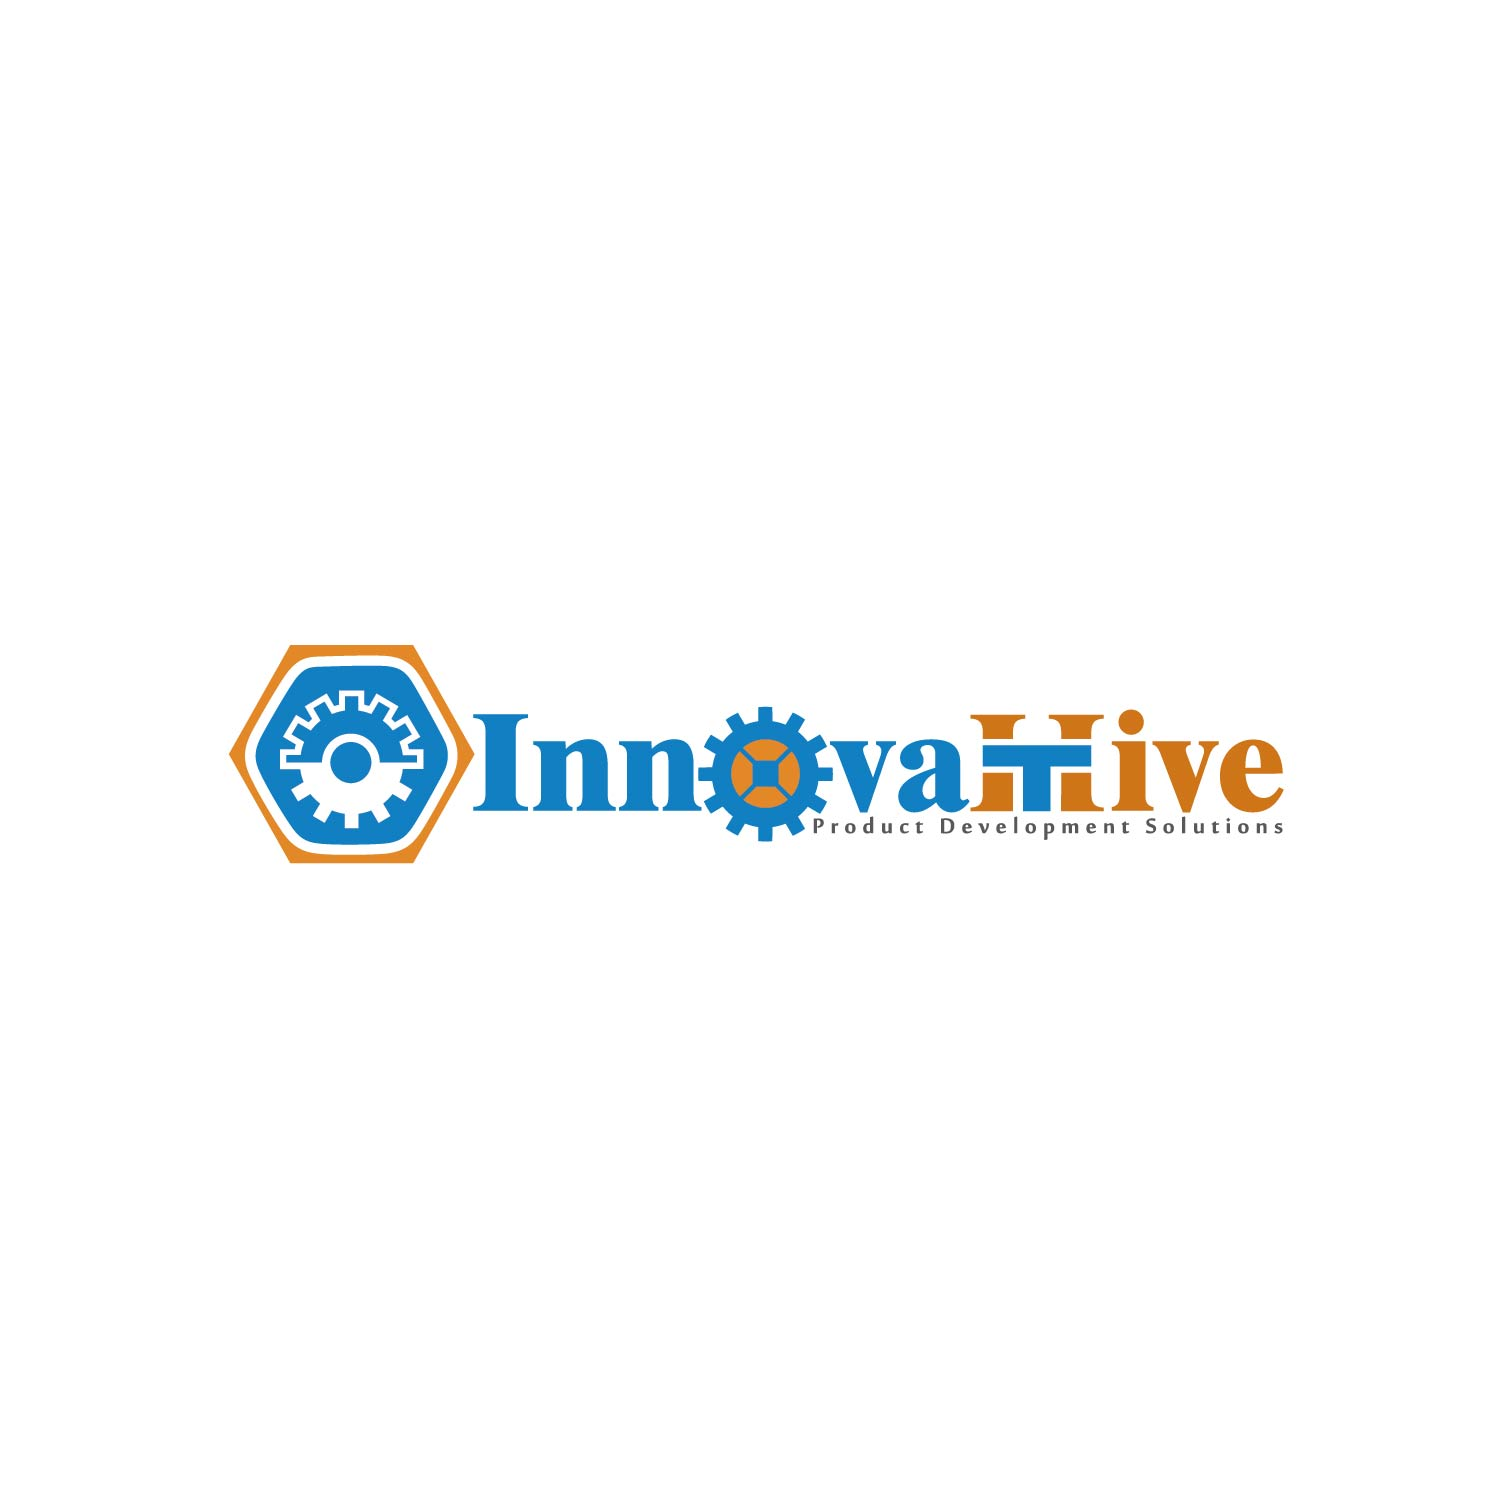 Logo Design by lagalag - Entry No. 24 in the Logo Design Contest InnovaHive Logo Design.